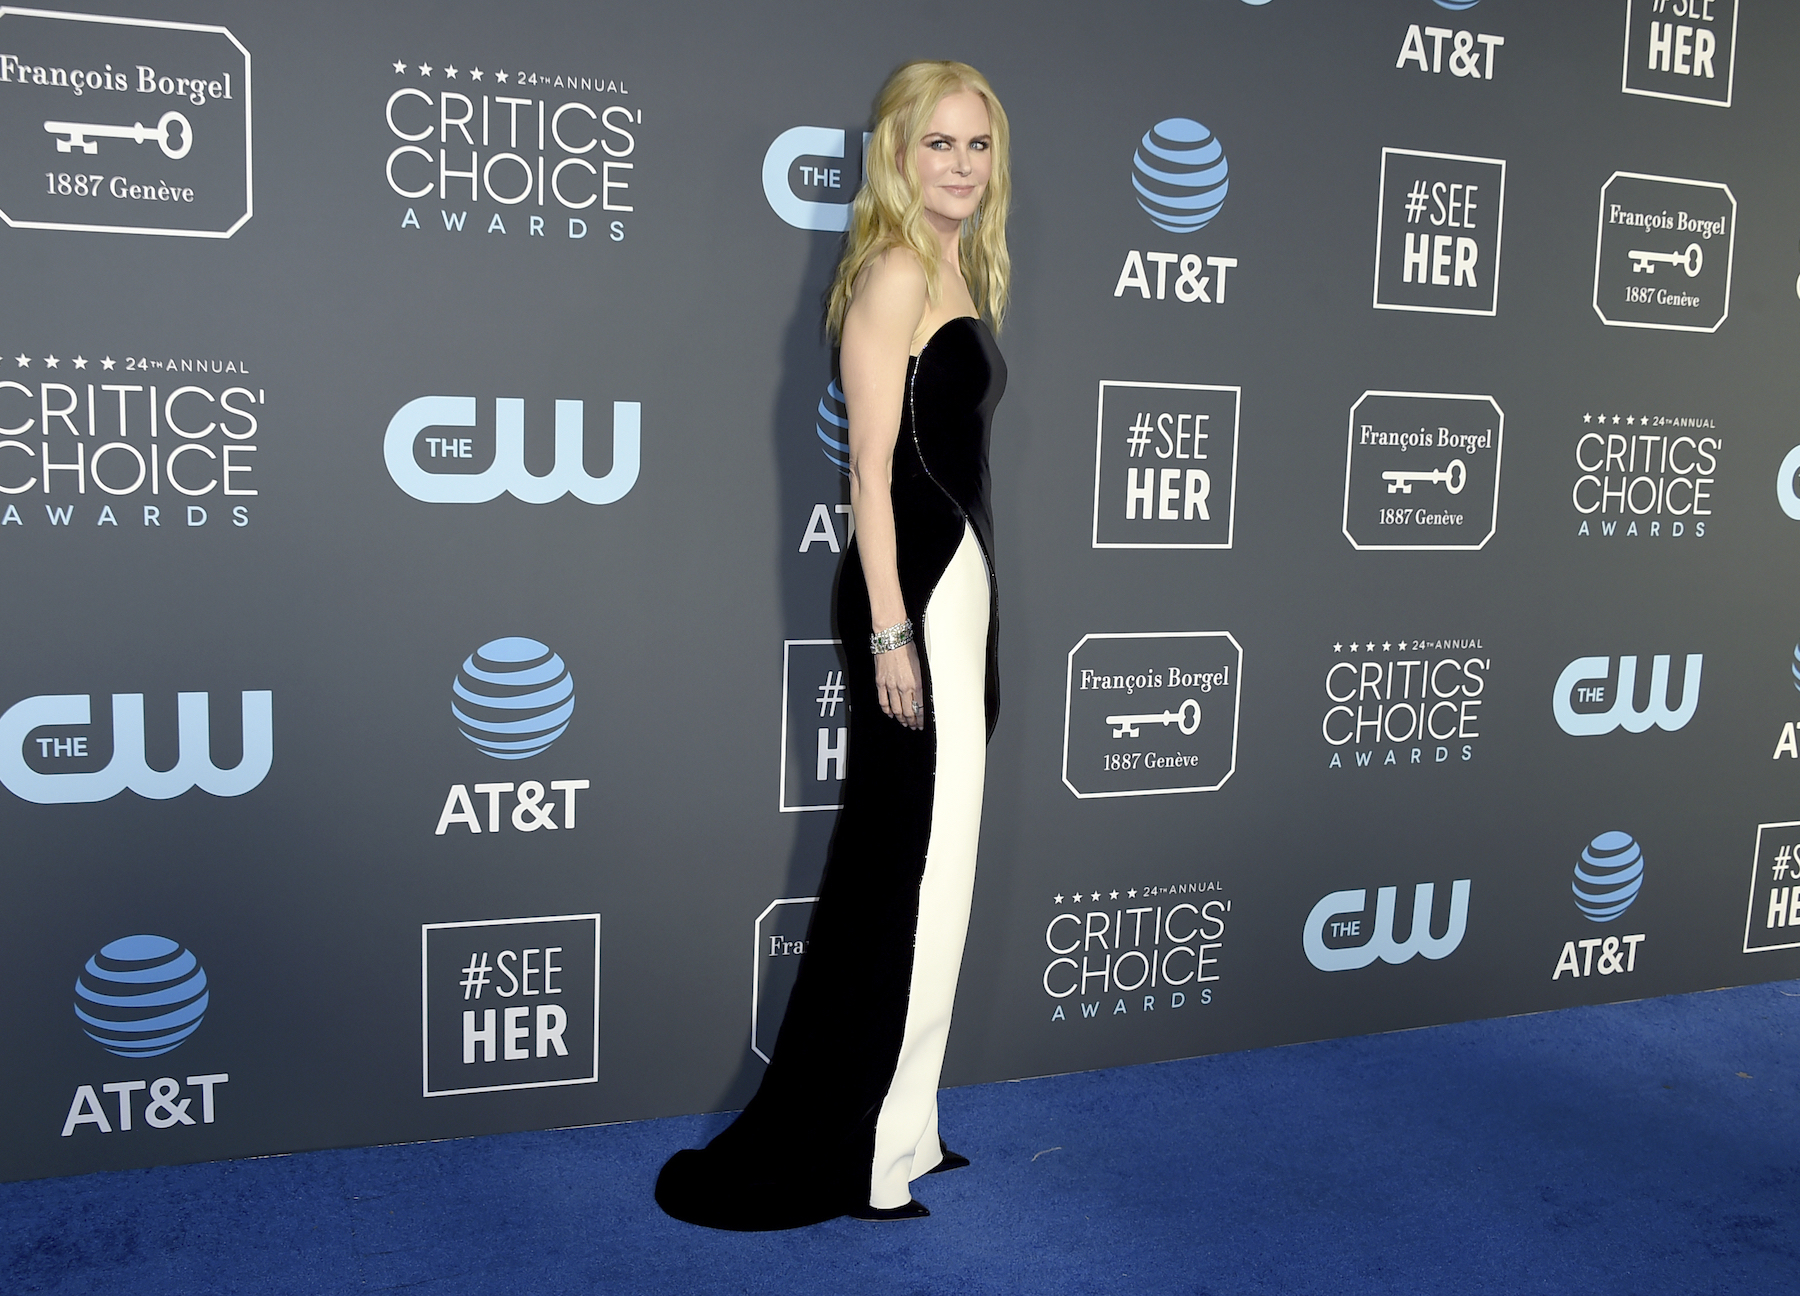 <div class='meta'><div class='origin-logo' data-origin='AP'></div><span class='caption-text' data-credit='Jordan Strauss/Invision/AP'>Nicole Kidman arrives at the 24th annual Critics' Choice Awards on Sunday, Jan. 13, 2019, at the Barker Hangar in Santa Monica, Calif.</span></div>